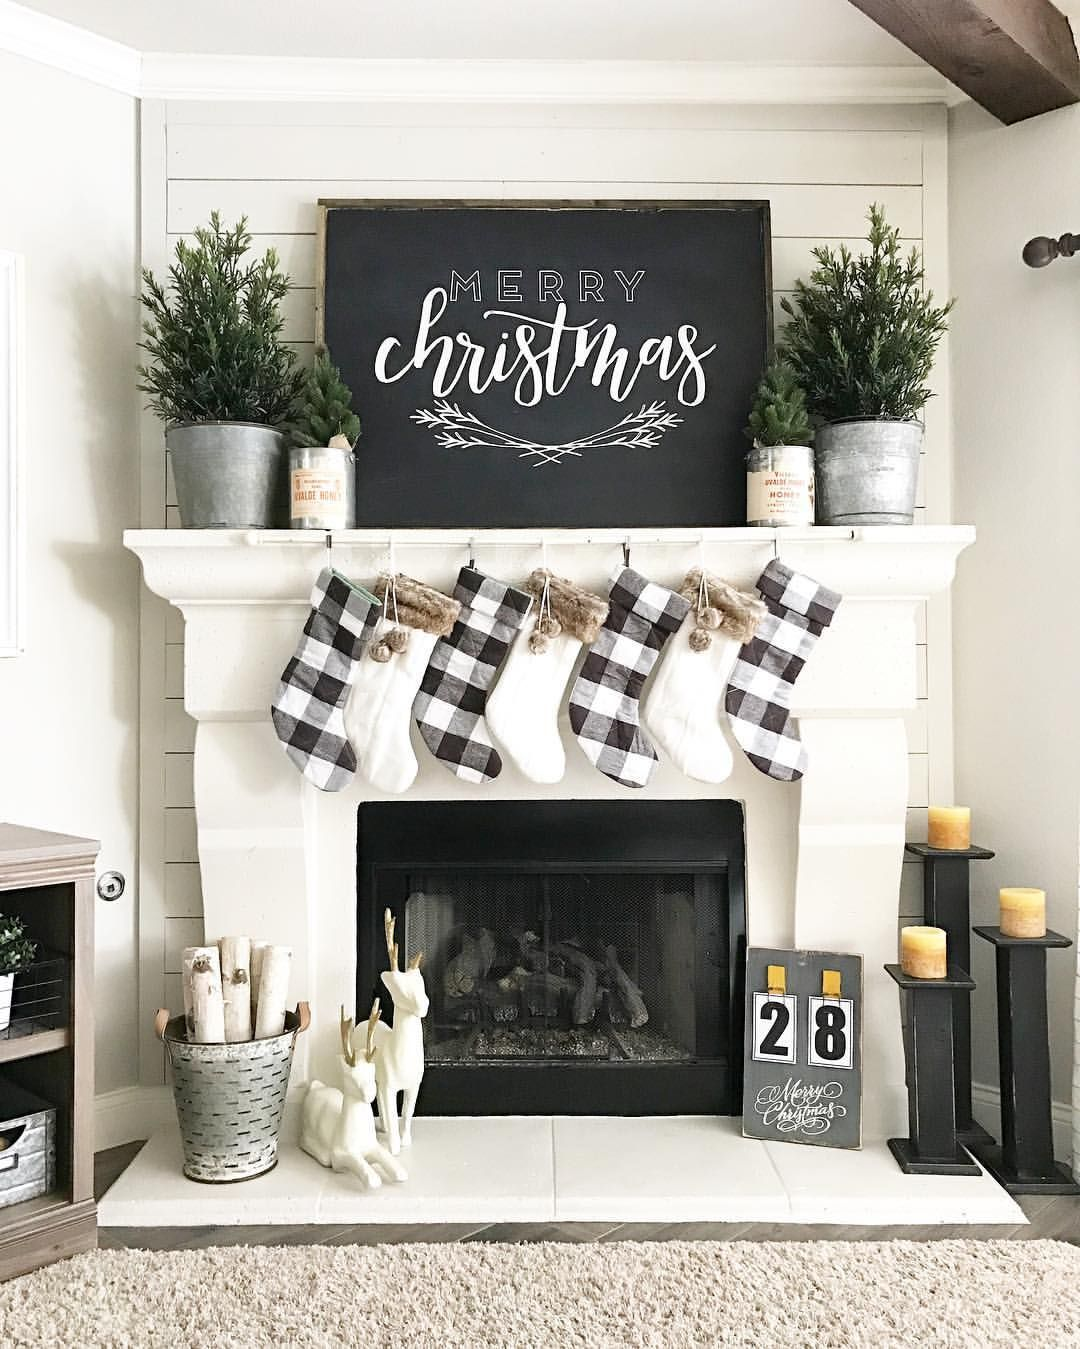 Love this simple black and white Christmas decor • Instagram photo by @ourfauxfarmhouse